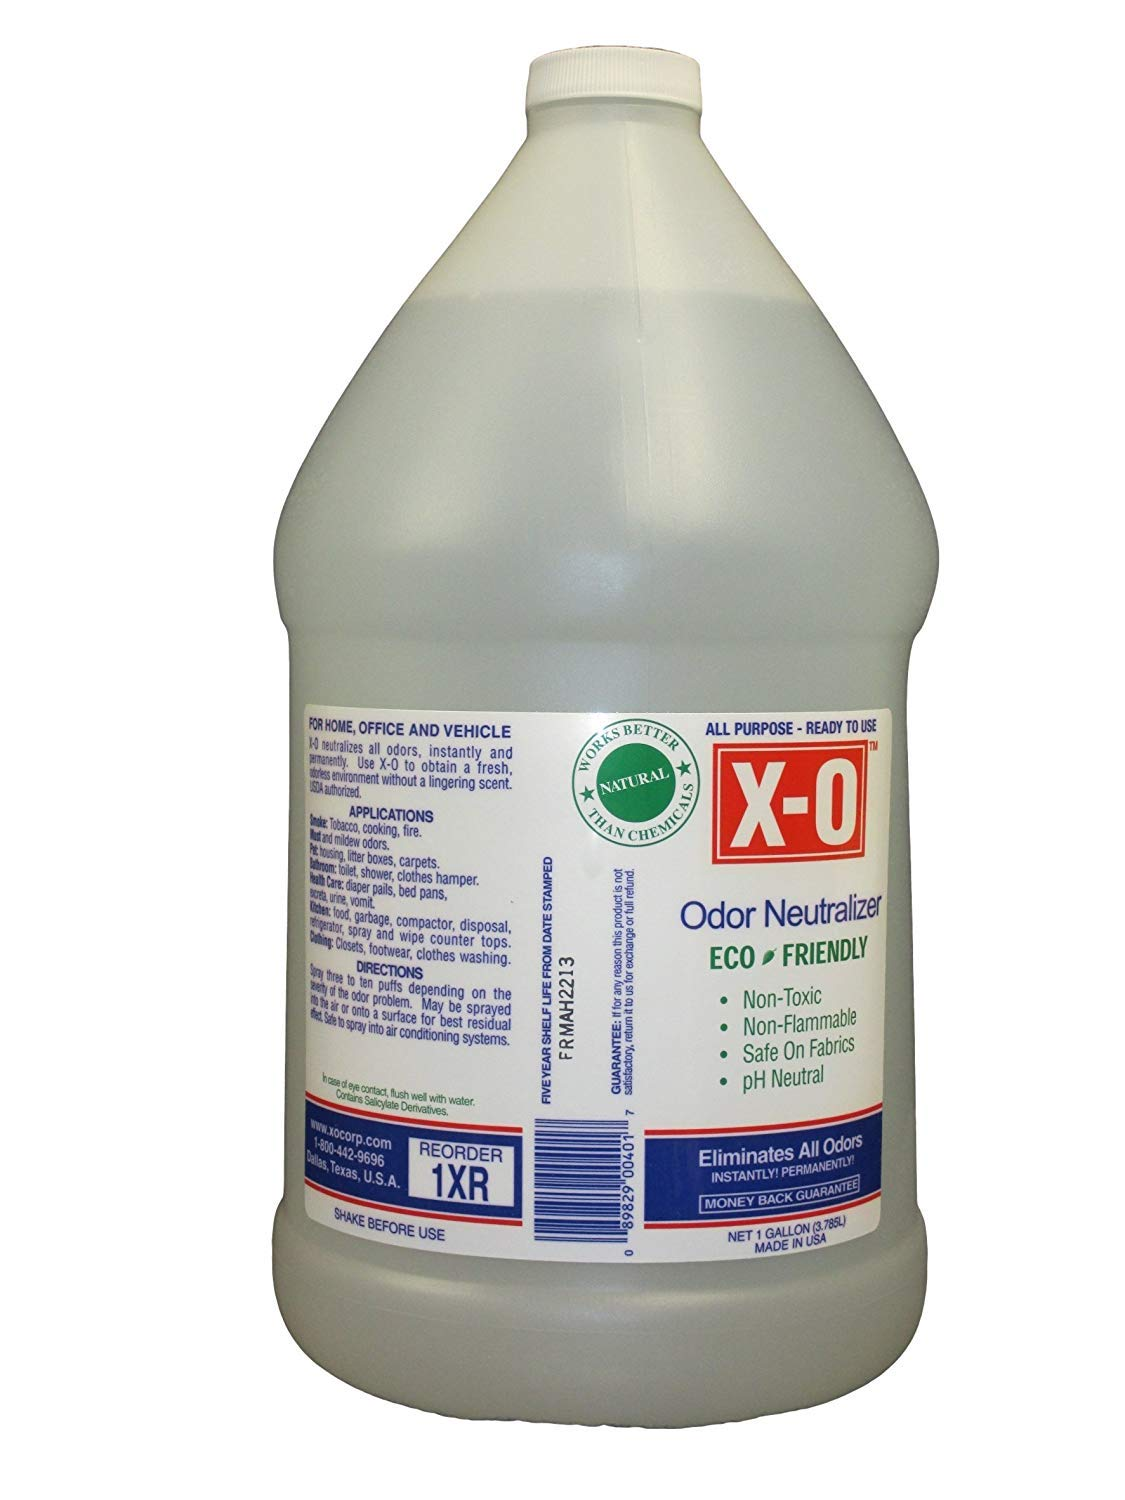 XO Plus Odor Neutralizer/Cleaner Concentrated (32oz, 1gallon, 5gallons) - All-Natural Odor Neutralizer Deodorizer, 1-Gallon, Clear